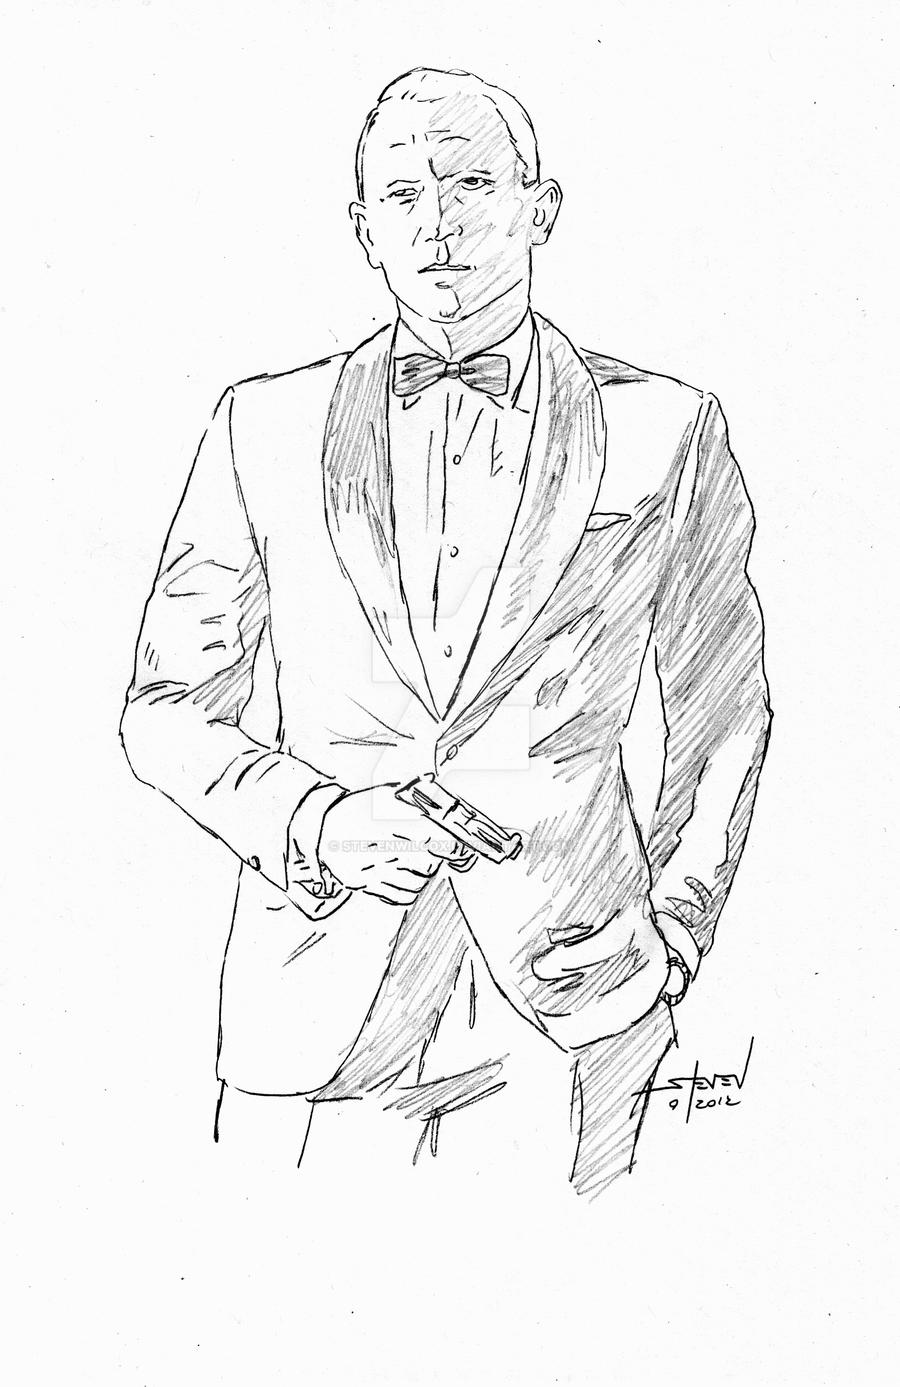 james bond coloring pages characters - photo#5